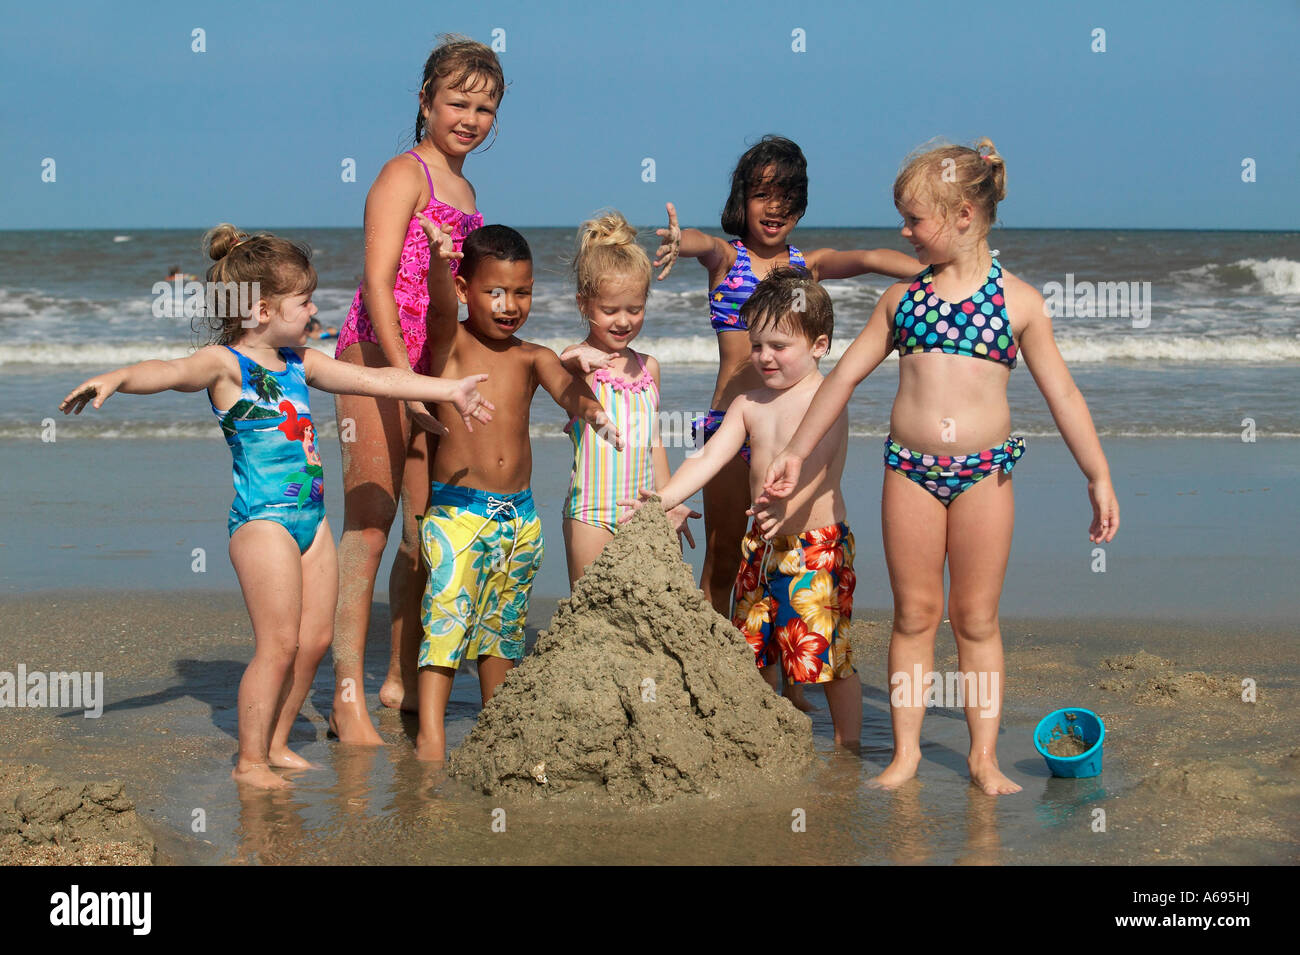 Kids At Beach Building A Sand Castle Stock Photo 11501597